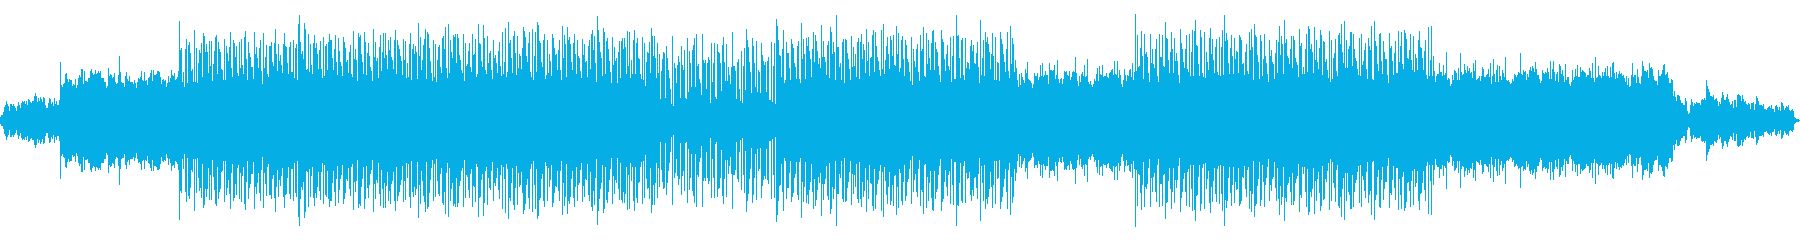 An attractive musical instrument with a dubious melody's reproduced waveform